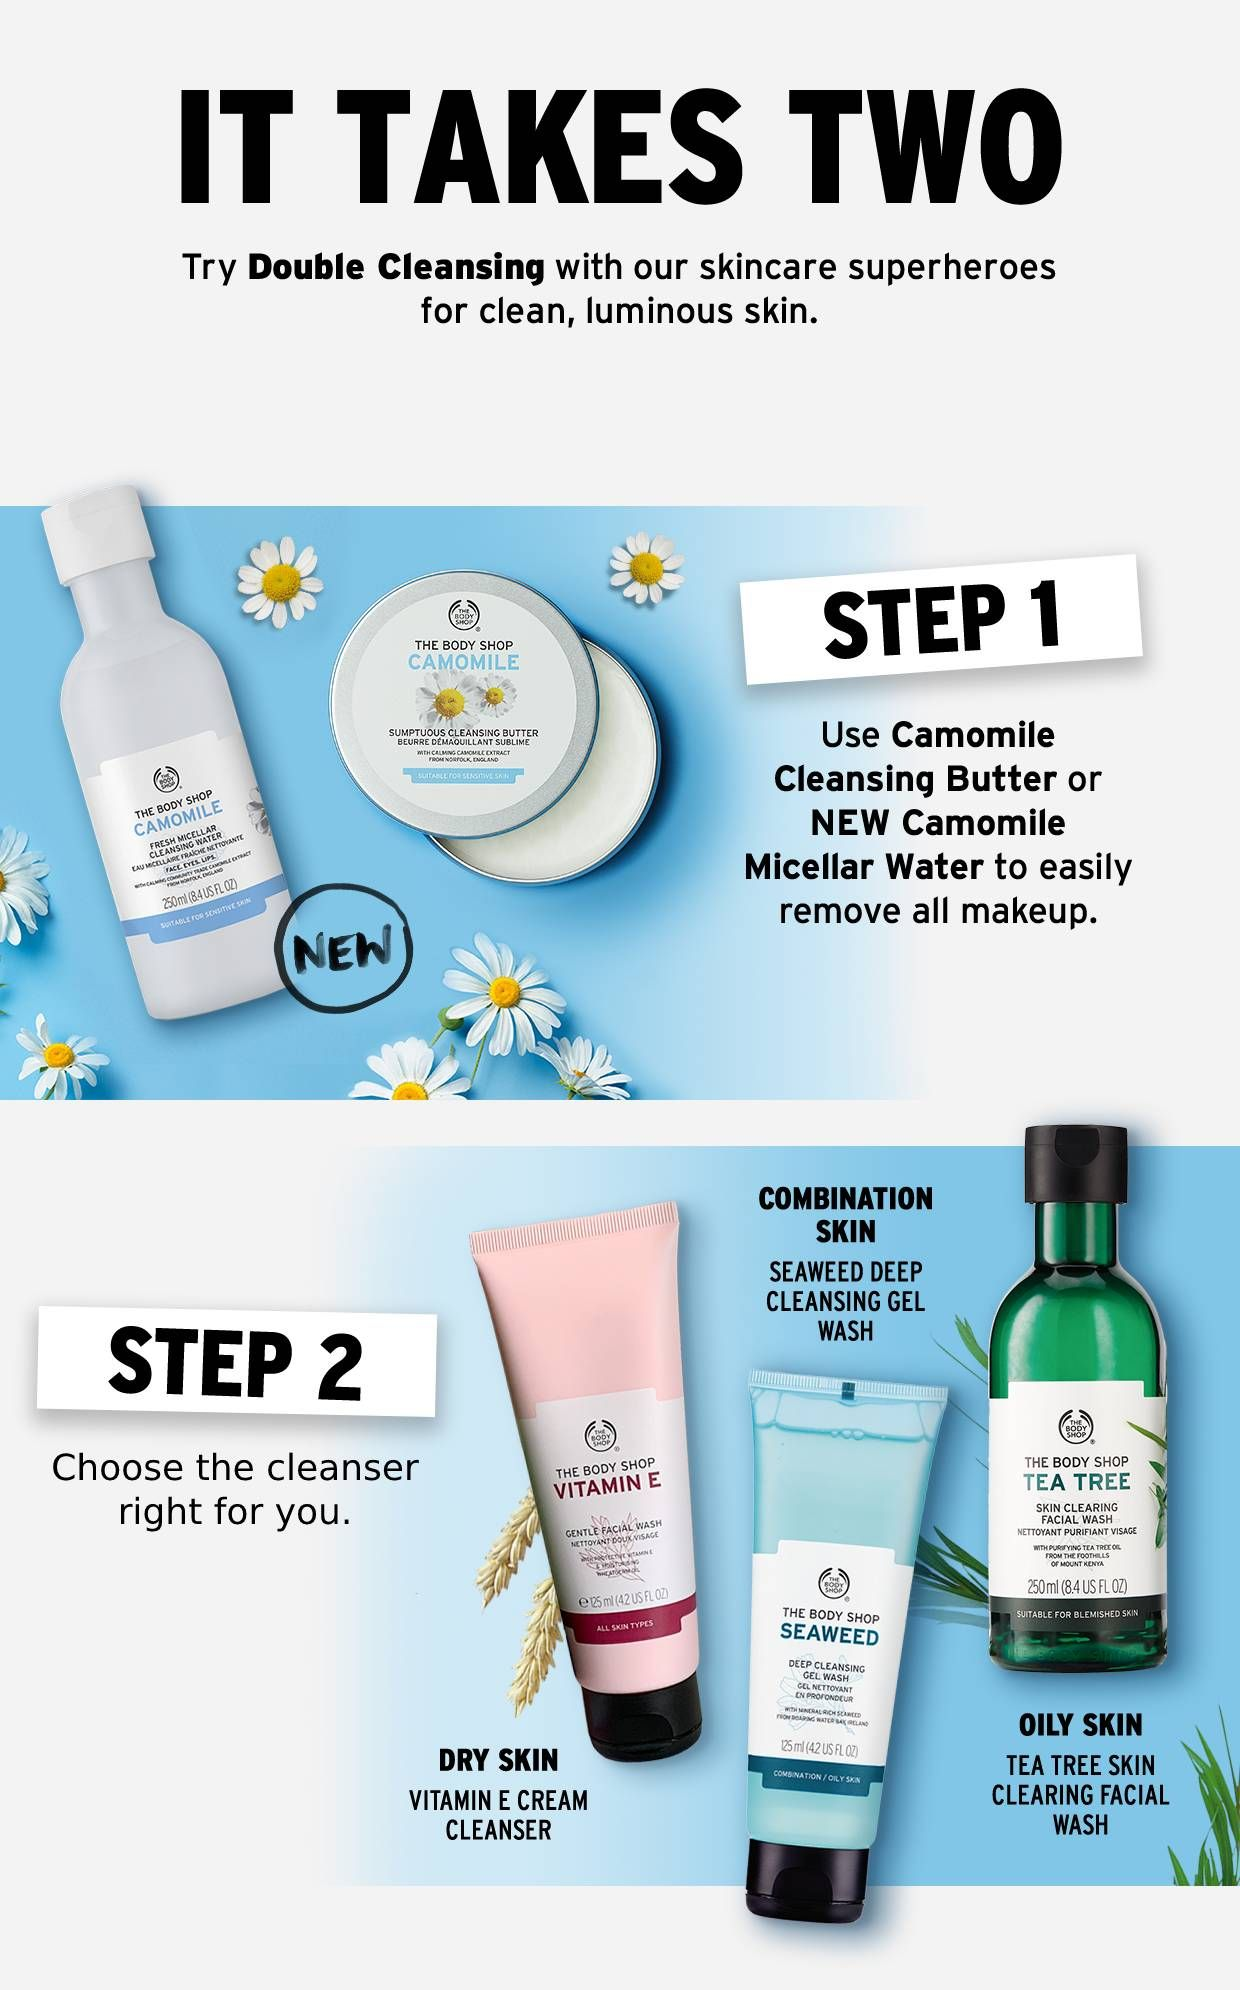 Double Cleansing Is Essential For Your Daily Skincare Routine Find Out More About This 2 Step Process Daily Skin Care Routine Body Shop Skincare The Body Shop